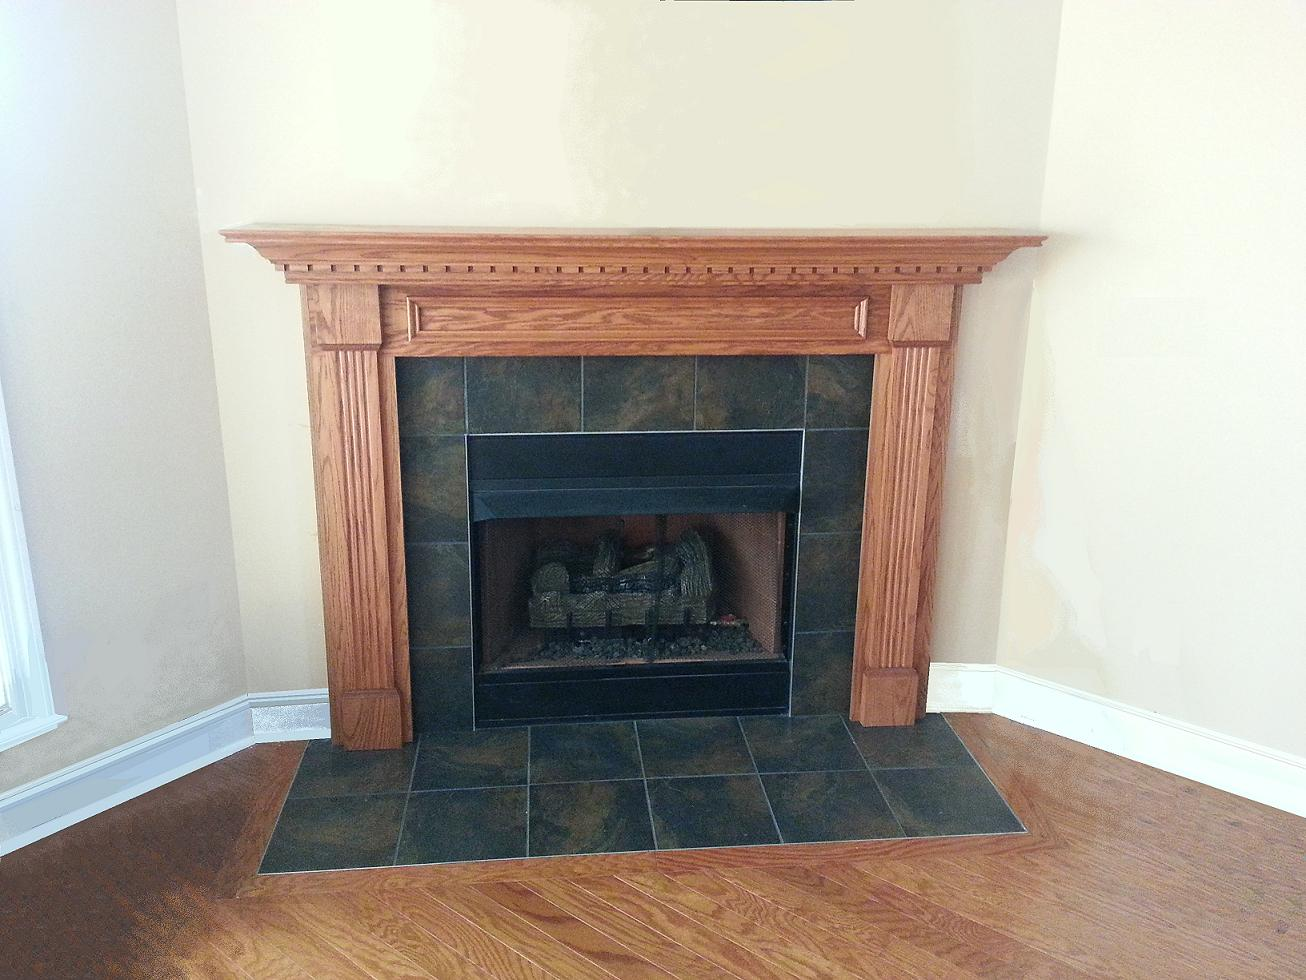 Fireplace Mantel installed by customer | Testimonial